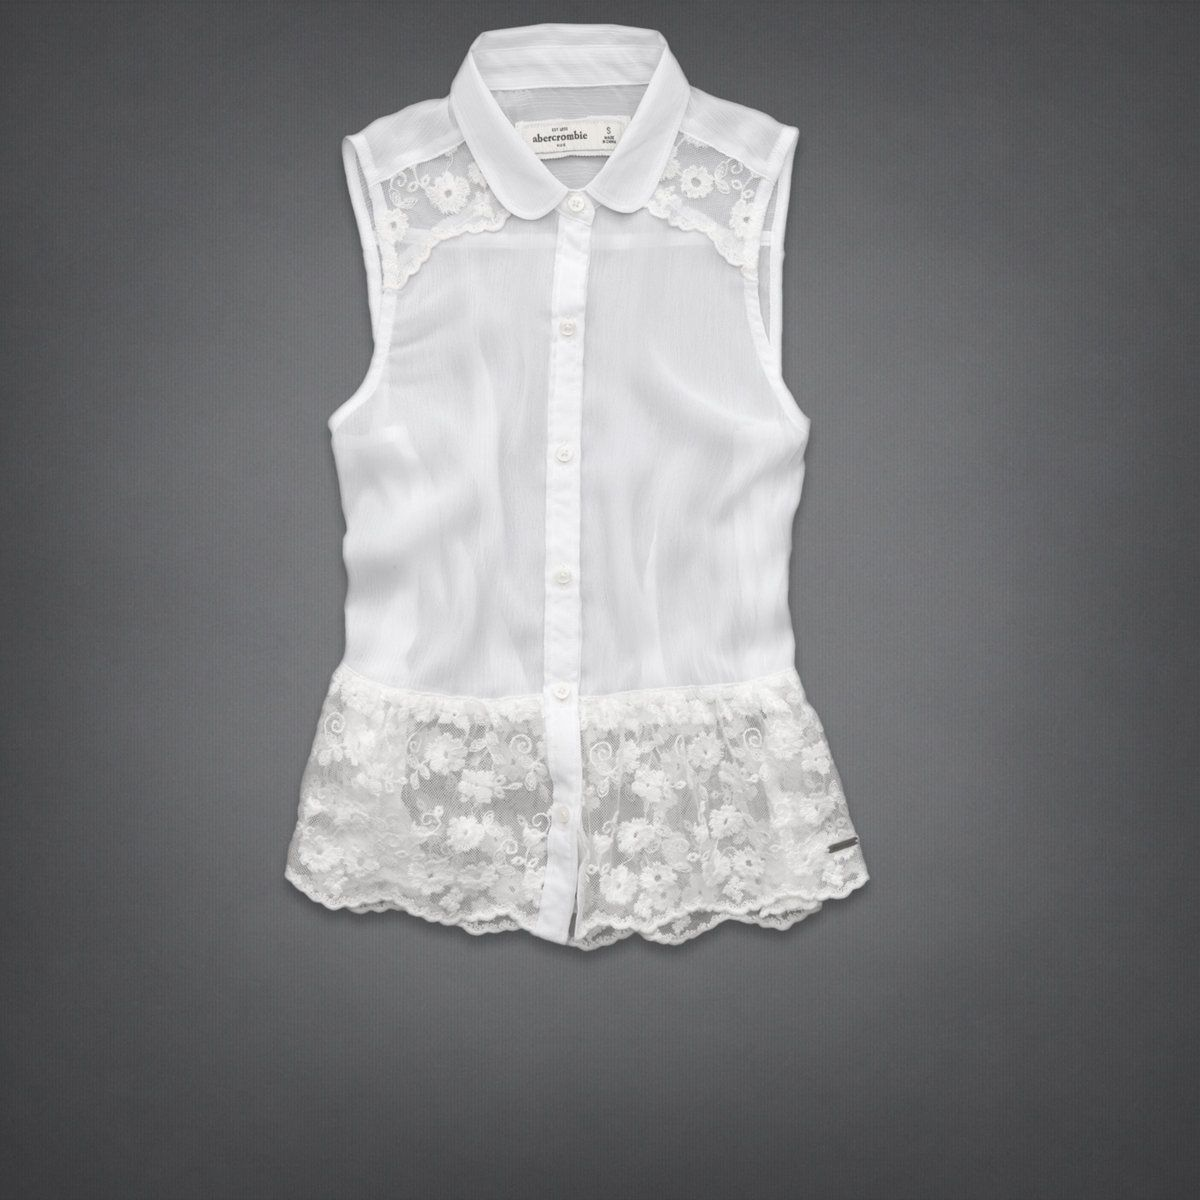 girls pretty lace shirt | girls shirts | abercrombiekids.com could take shirts you have and add the lace